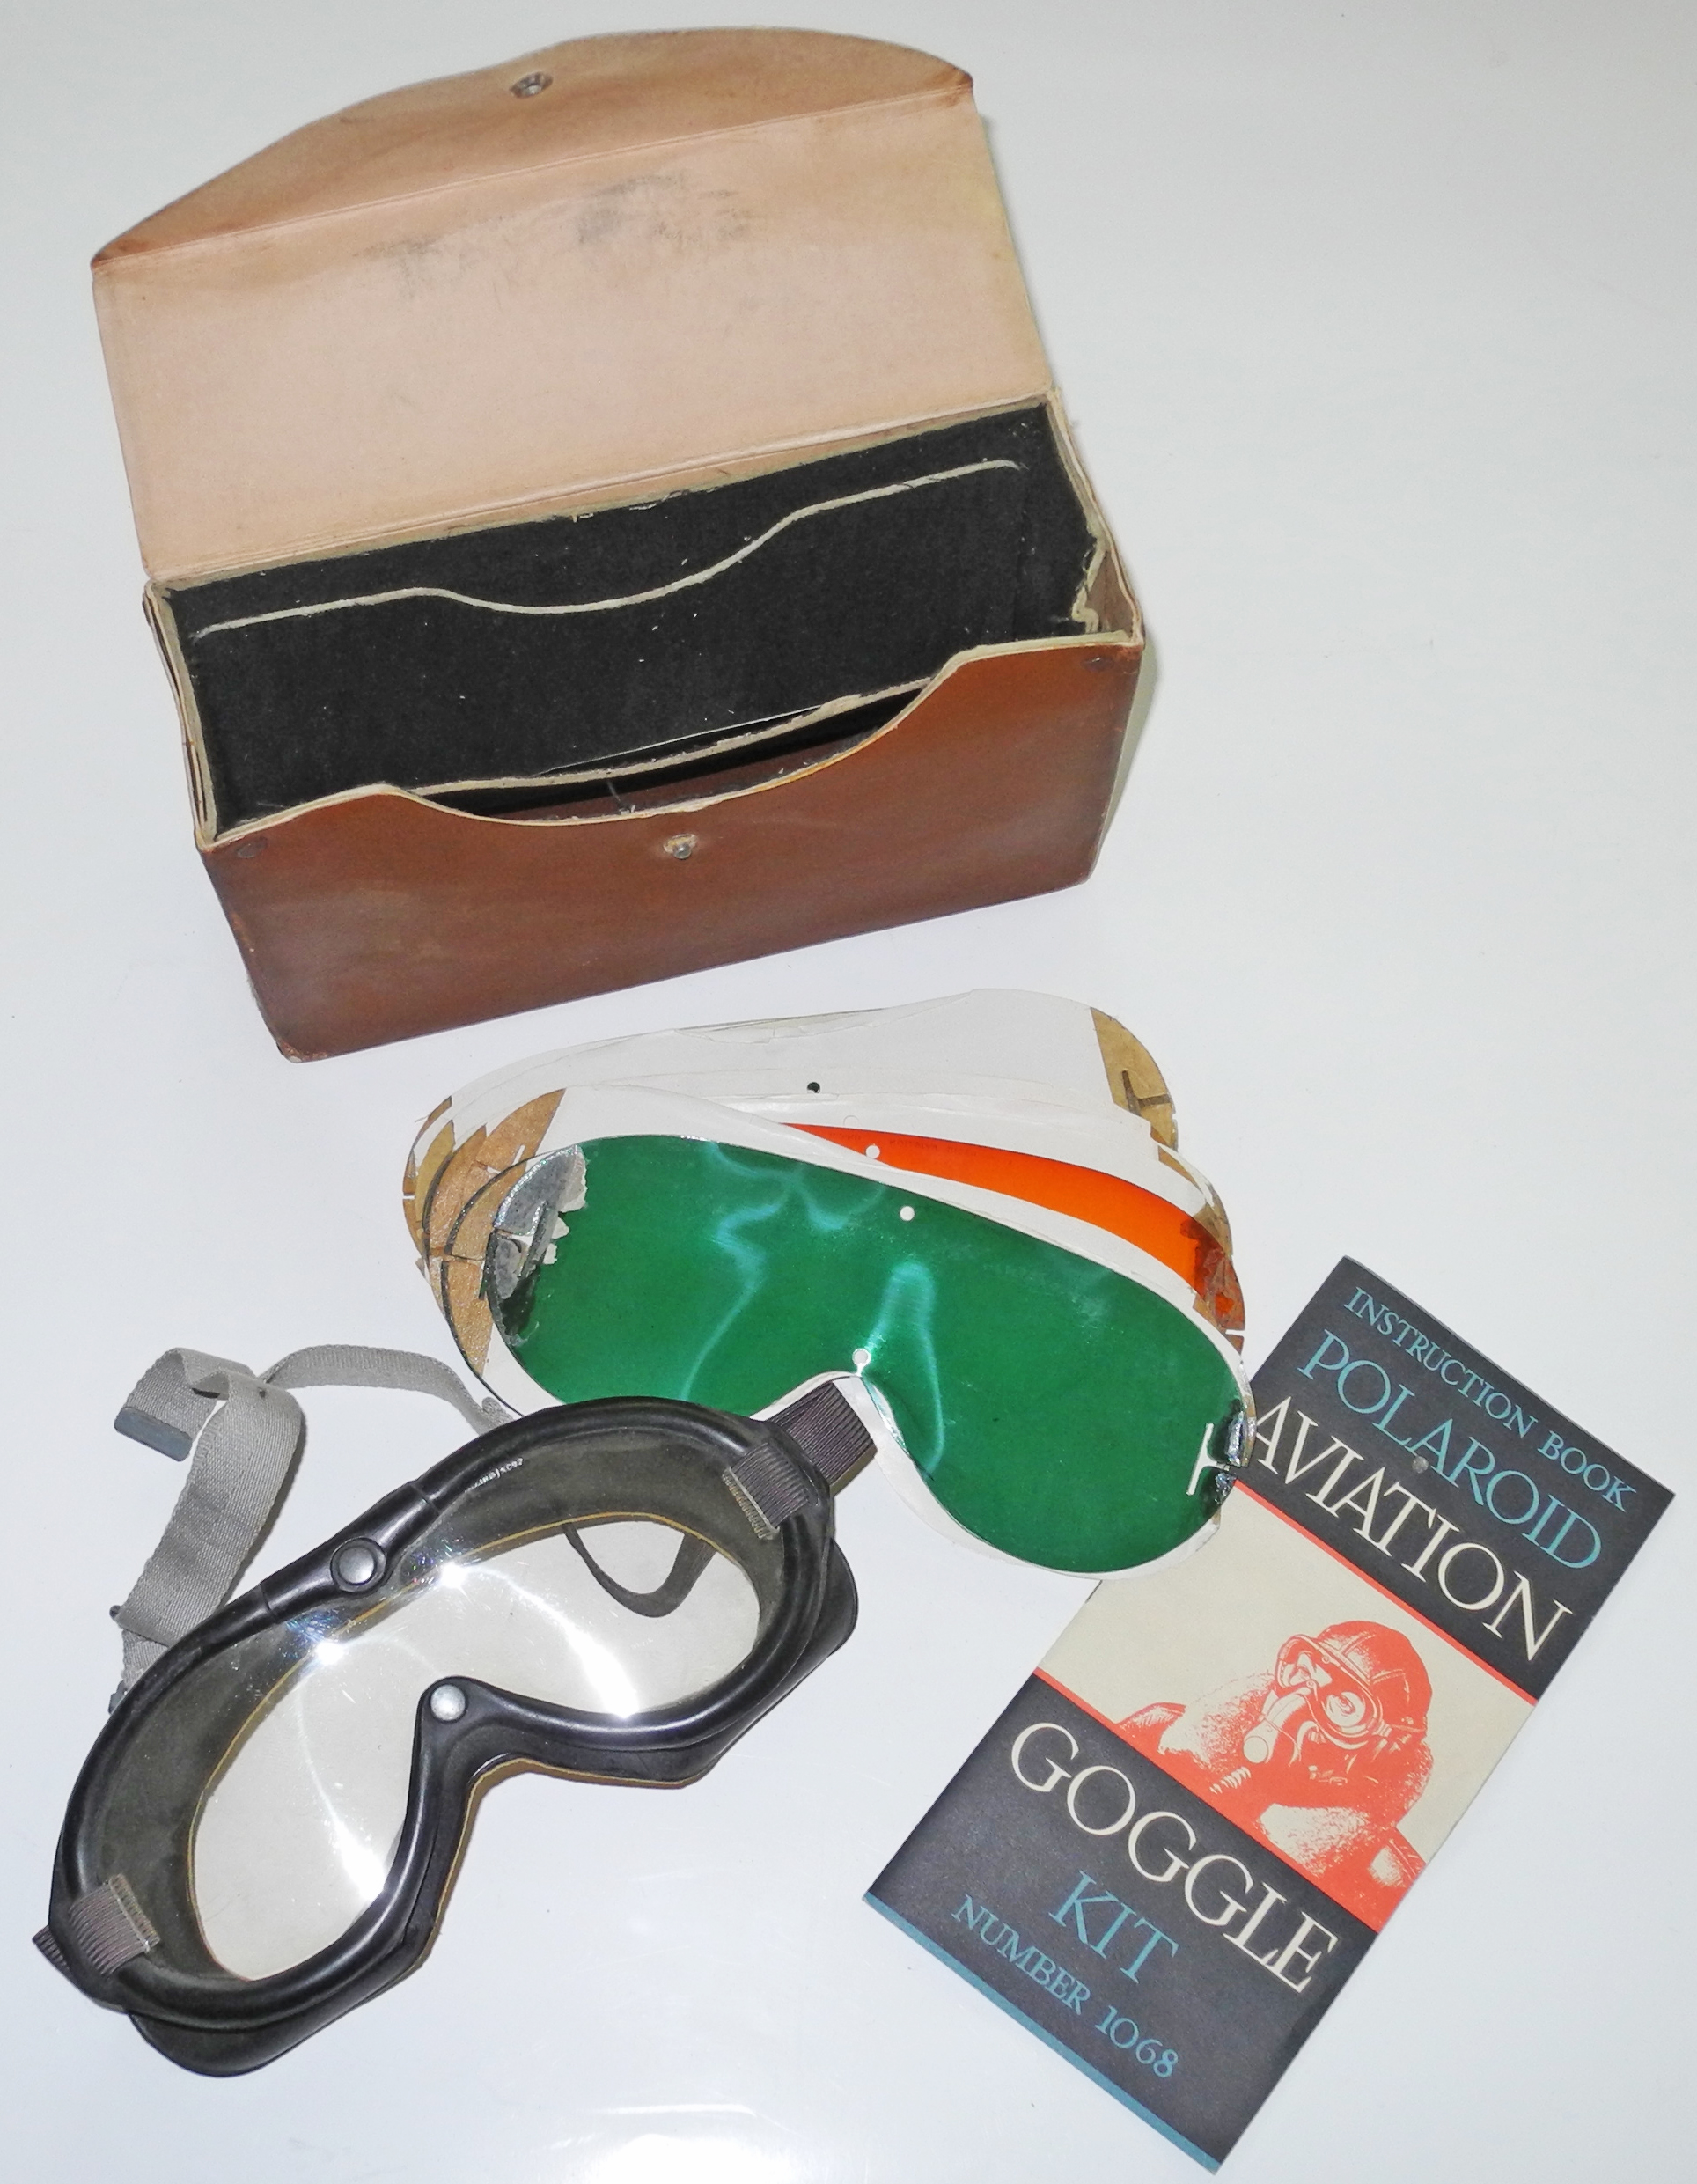 AAF Polaroid Type 1065 goggles kit